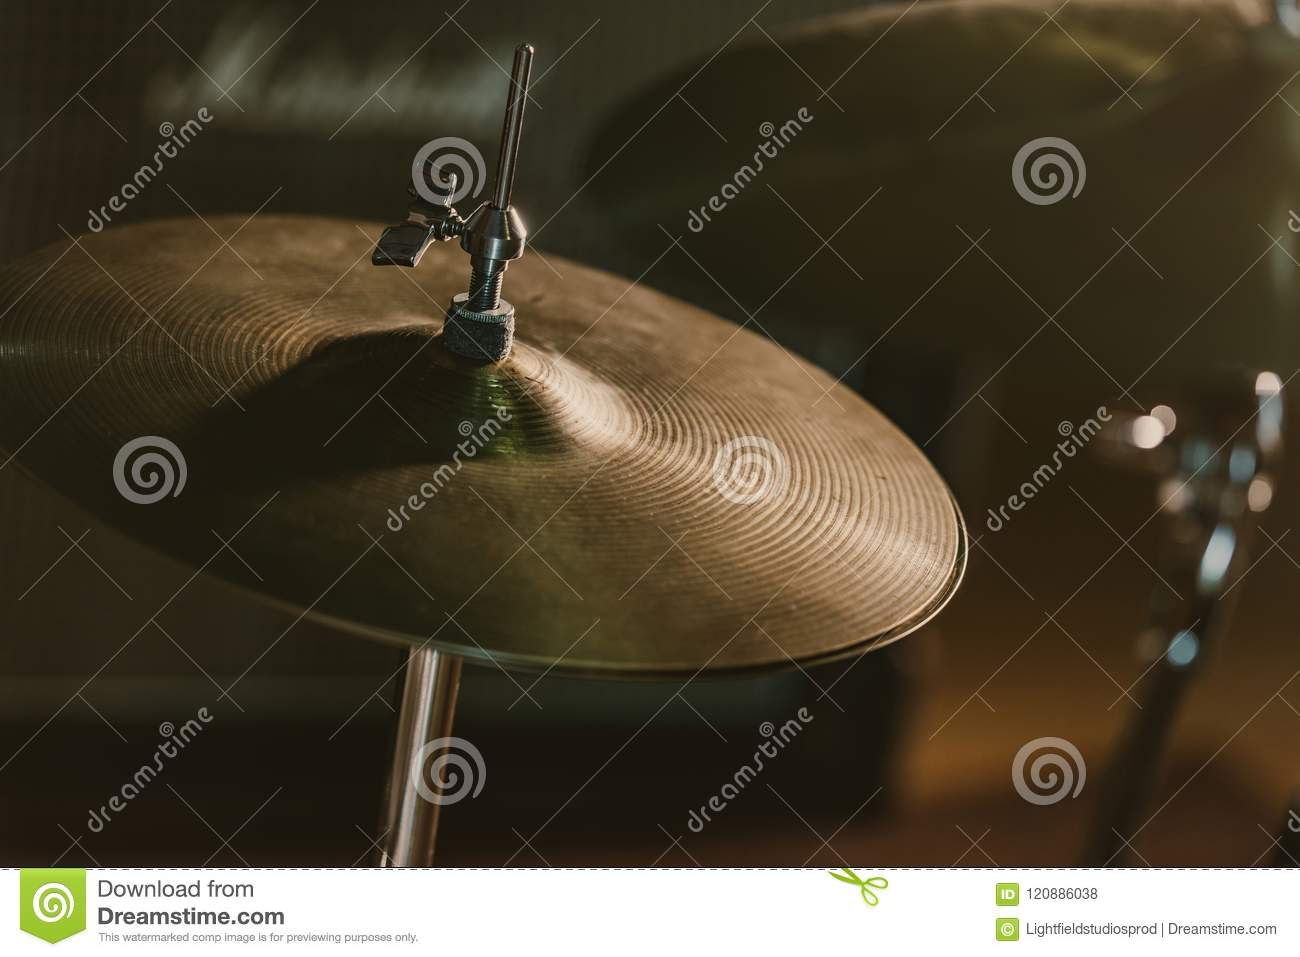 close-up shot of drum cymbal under spotlight